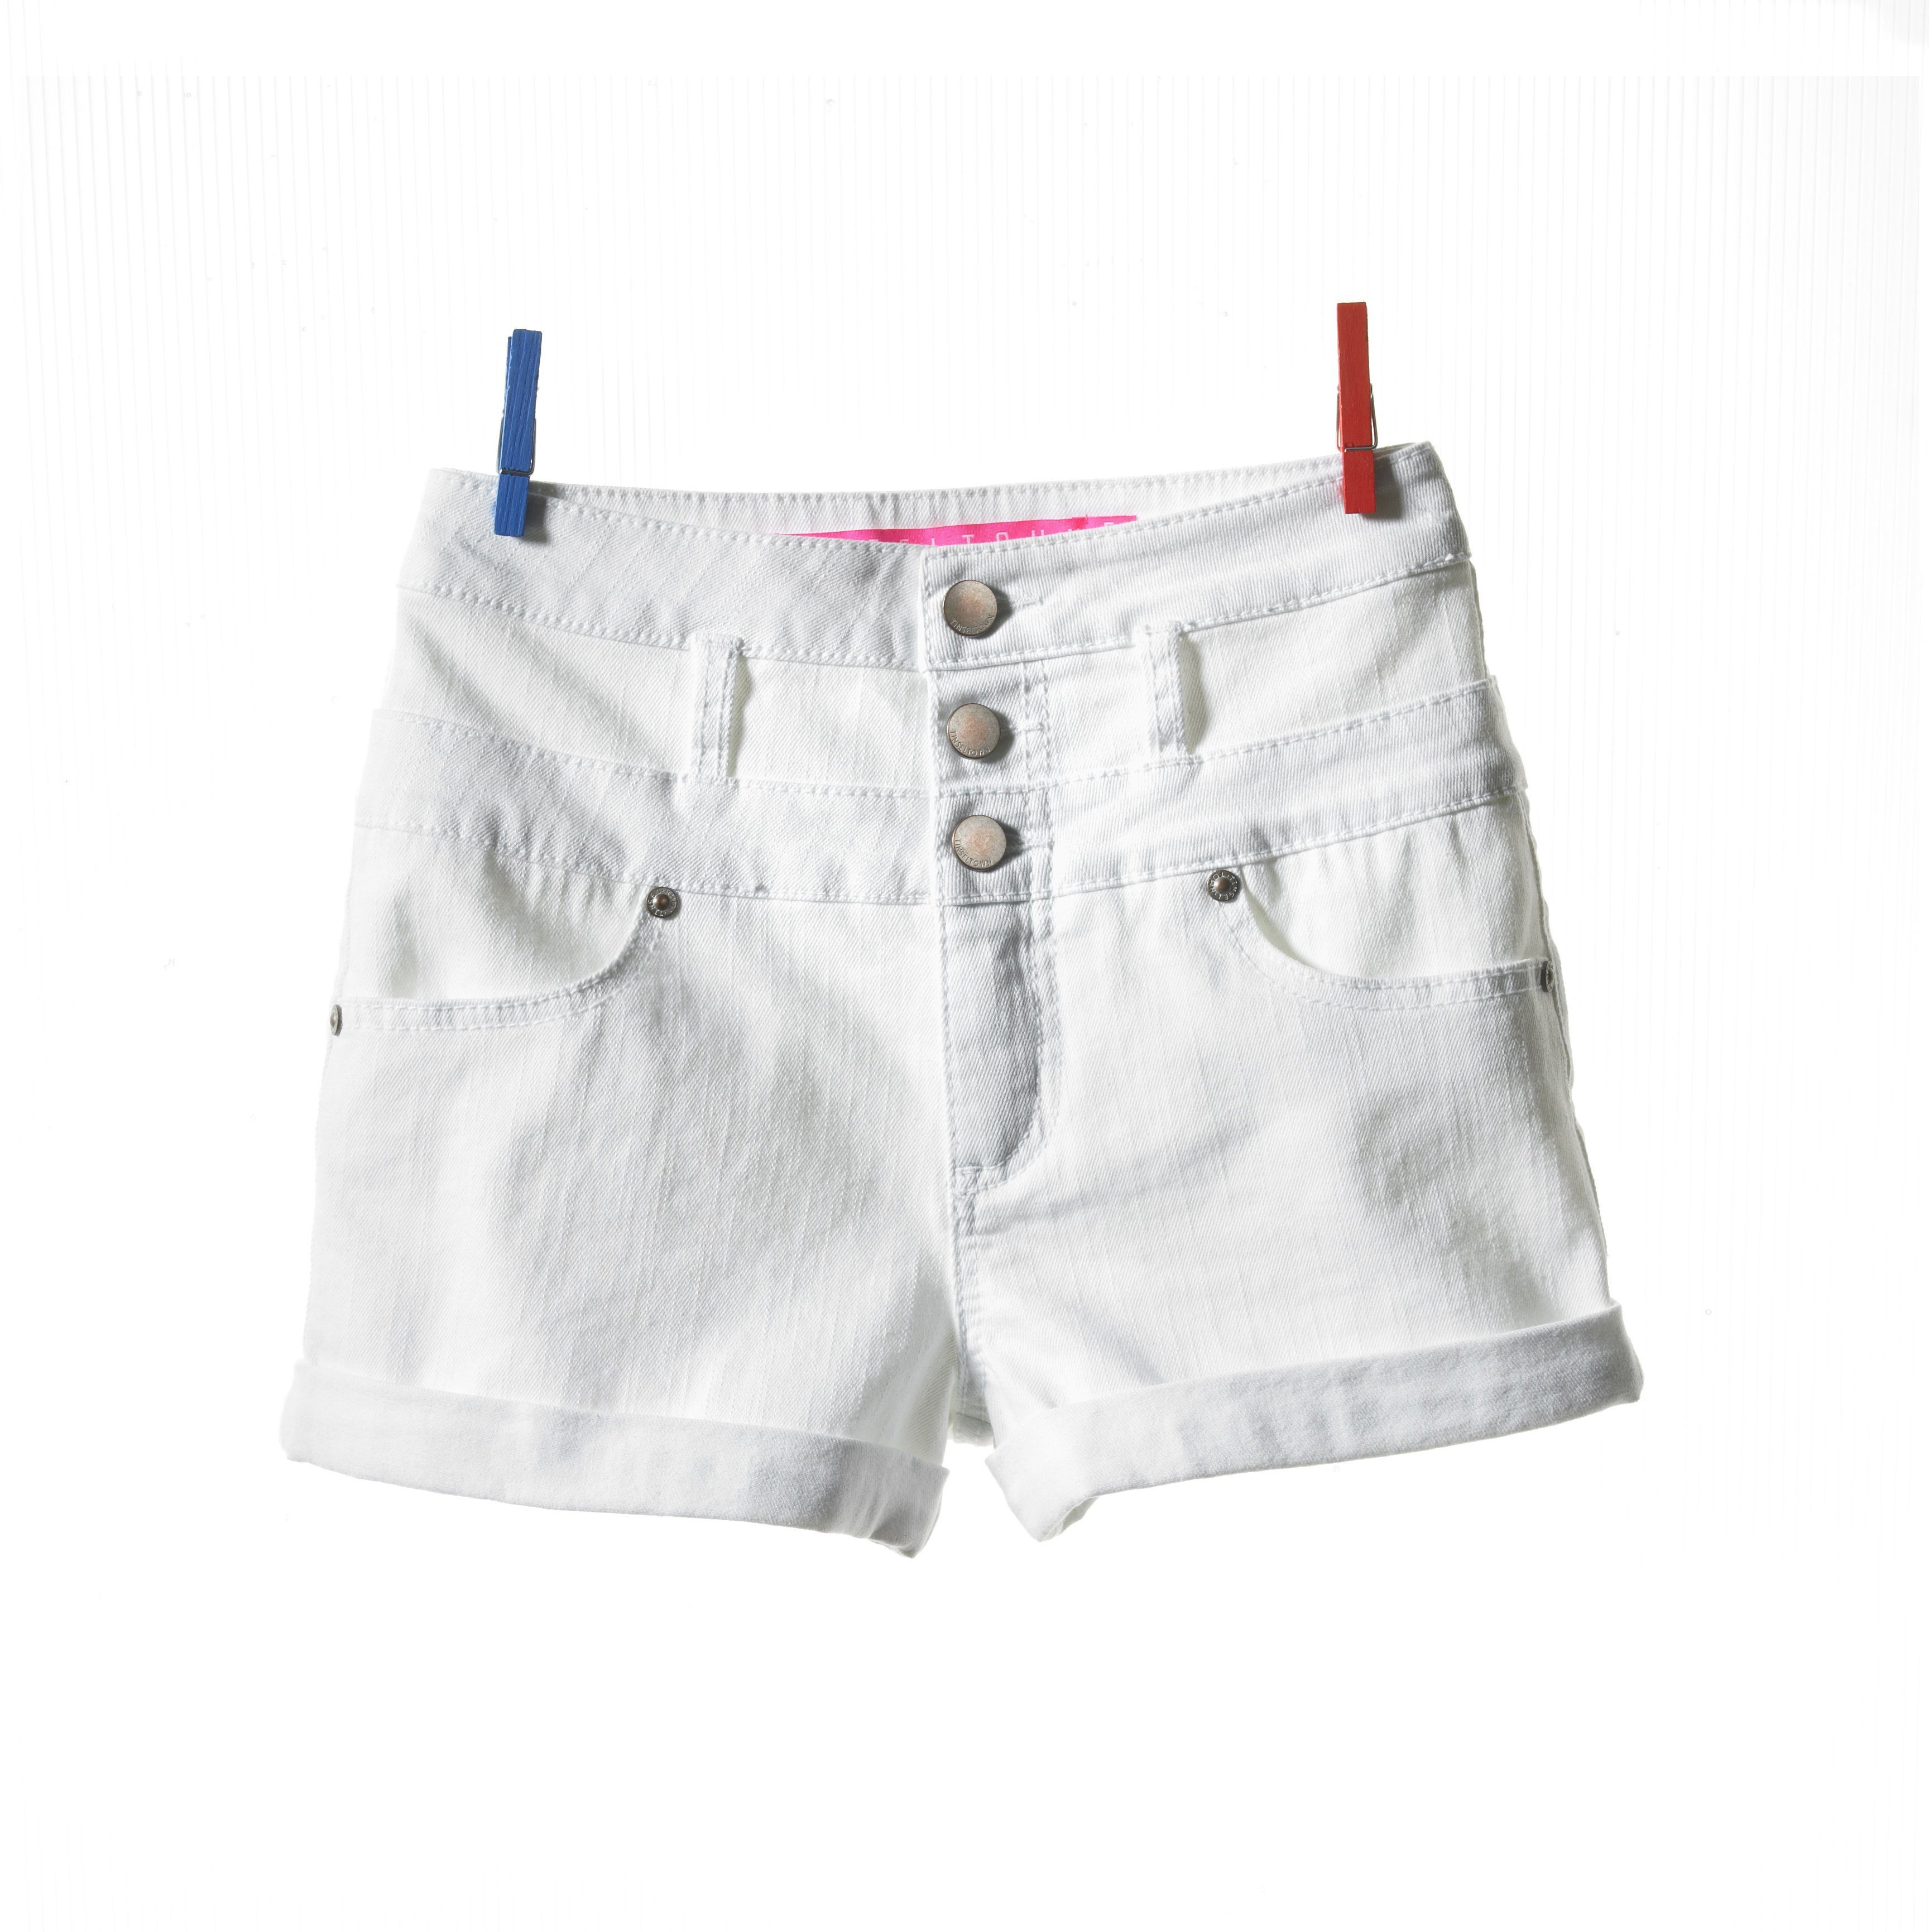 Tinseltown shorts ($25, macys.com). They might be white, but sturdy material and careful detailing make these shorts slimming. (Macy's/MCT)